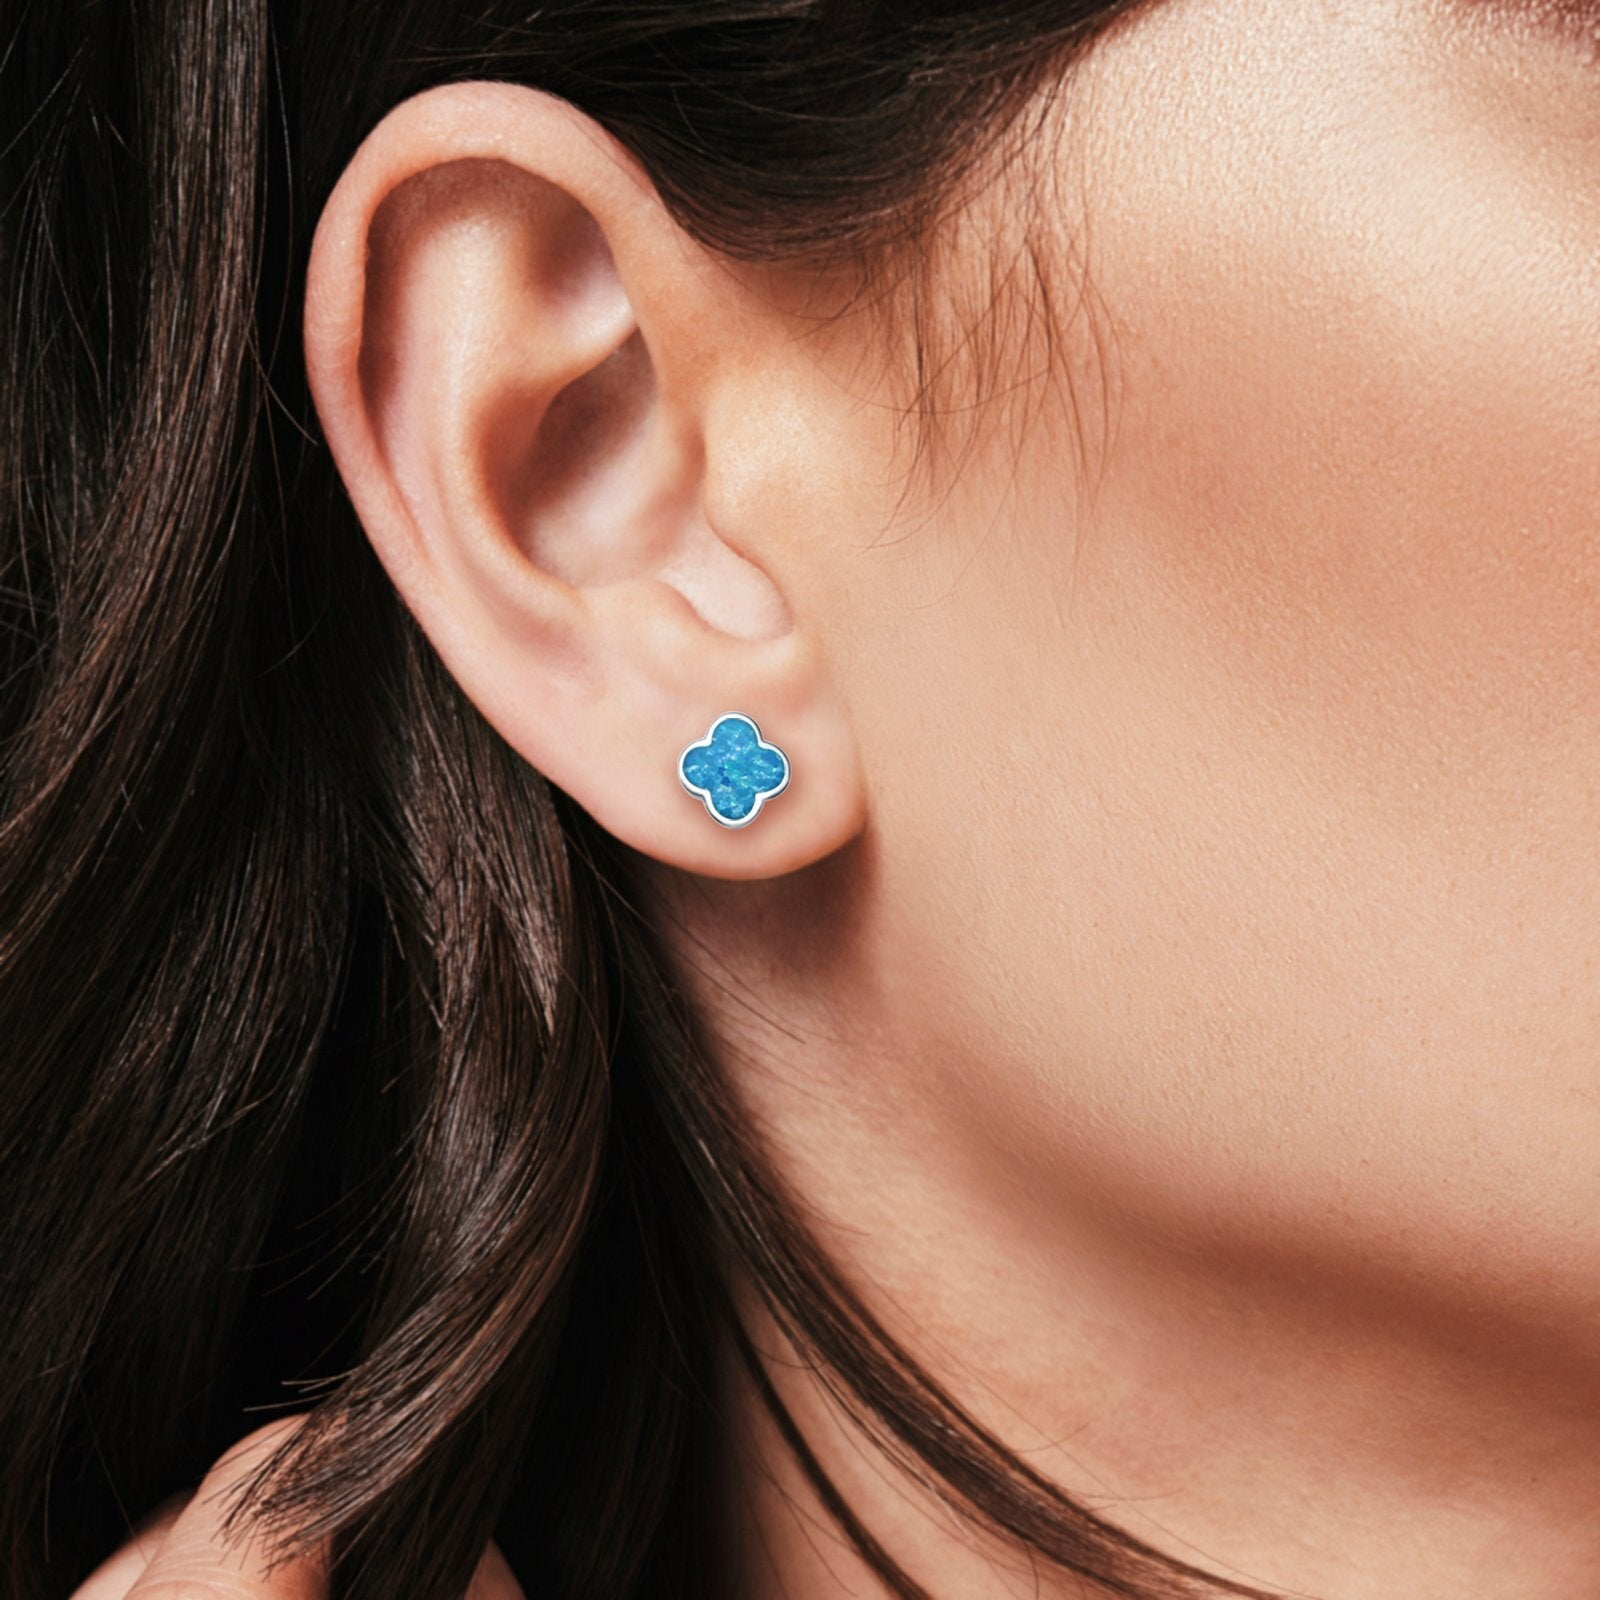 Clover Flower Stud Earring Lab Created Blue Opal 925 Sterling Silver (6.20mm)